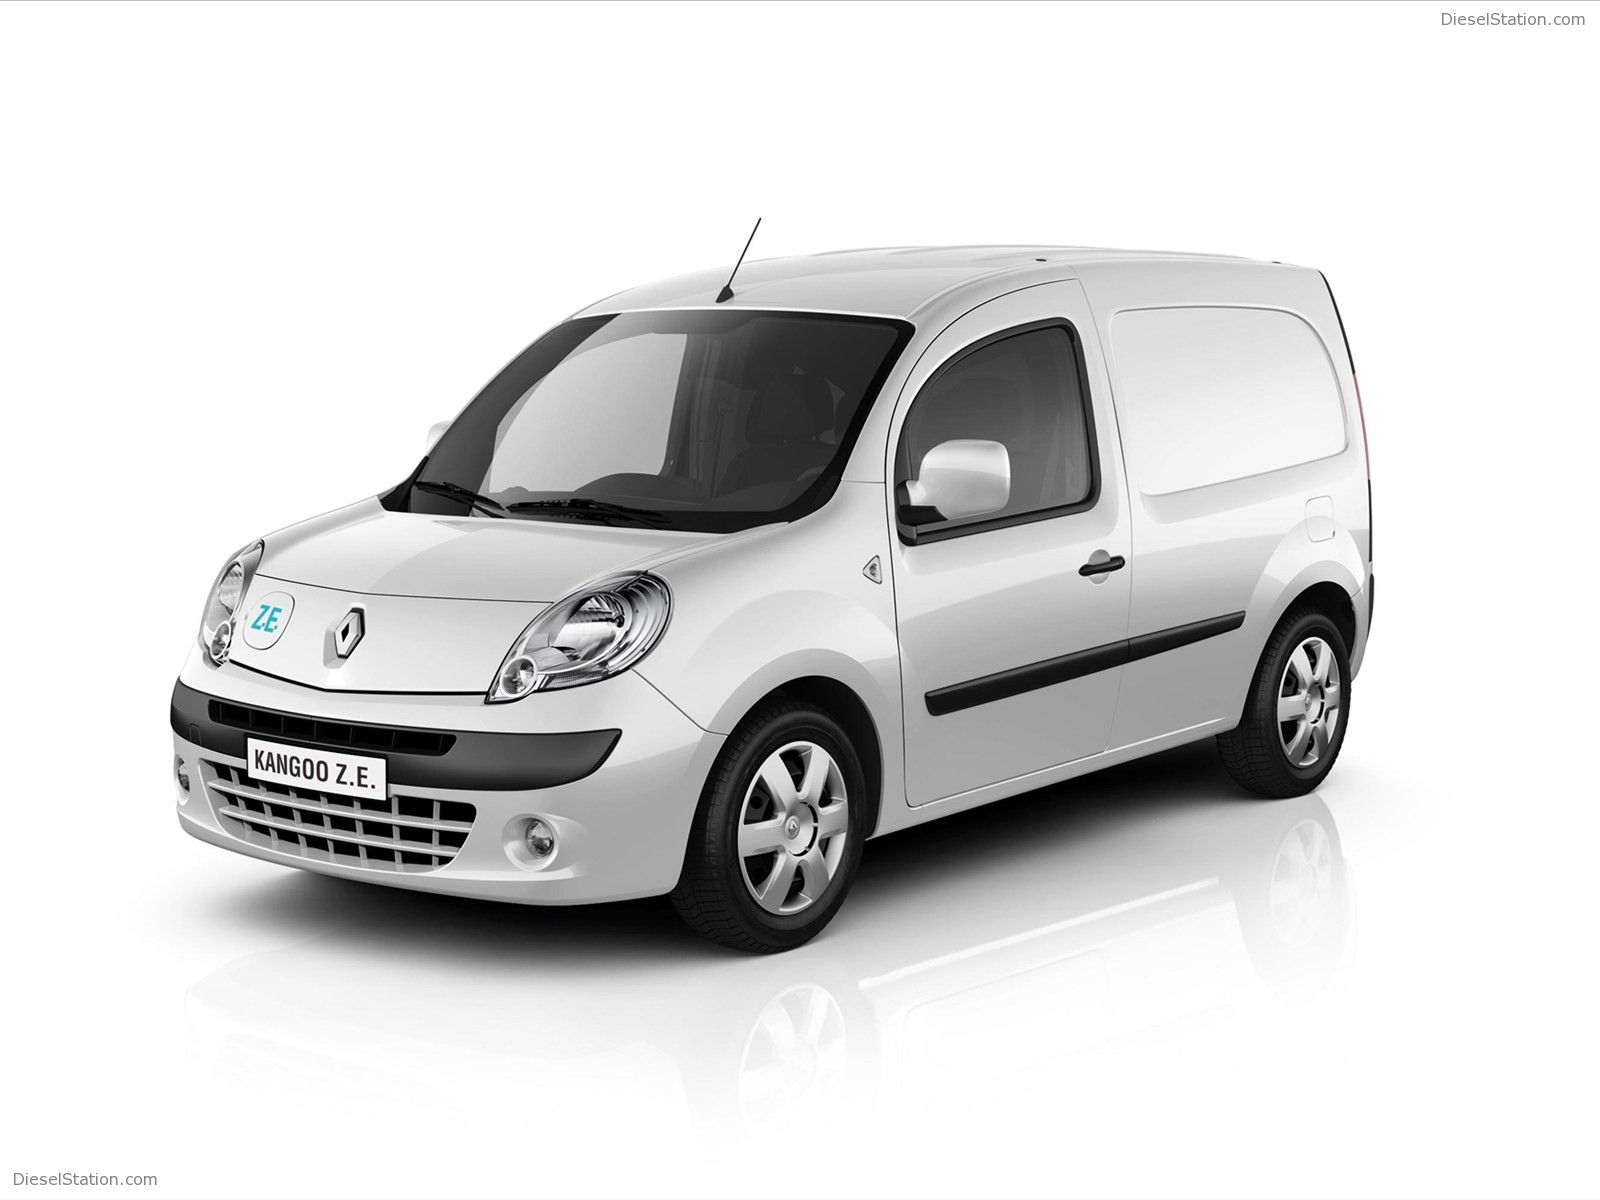 2011 Renault Kangoo ii (w) - pictures, information and